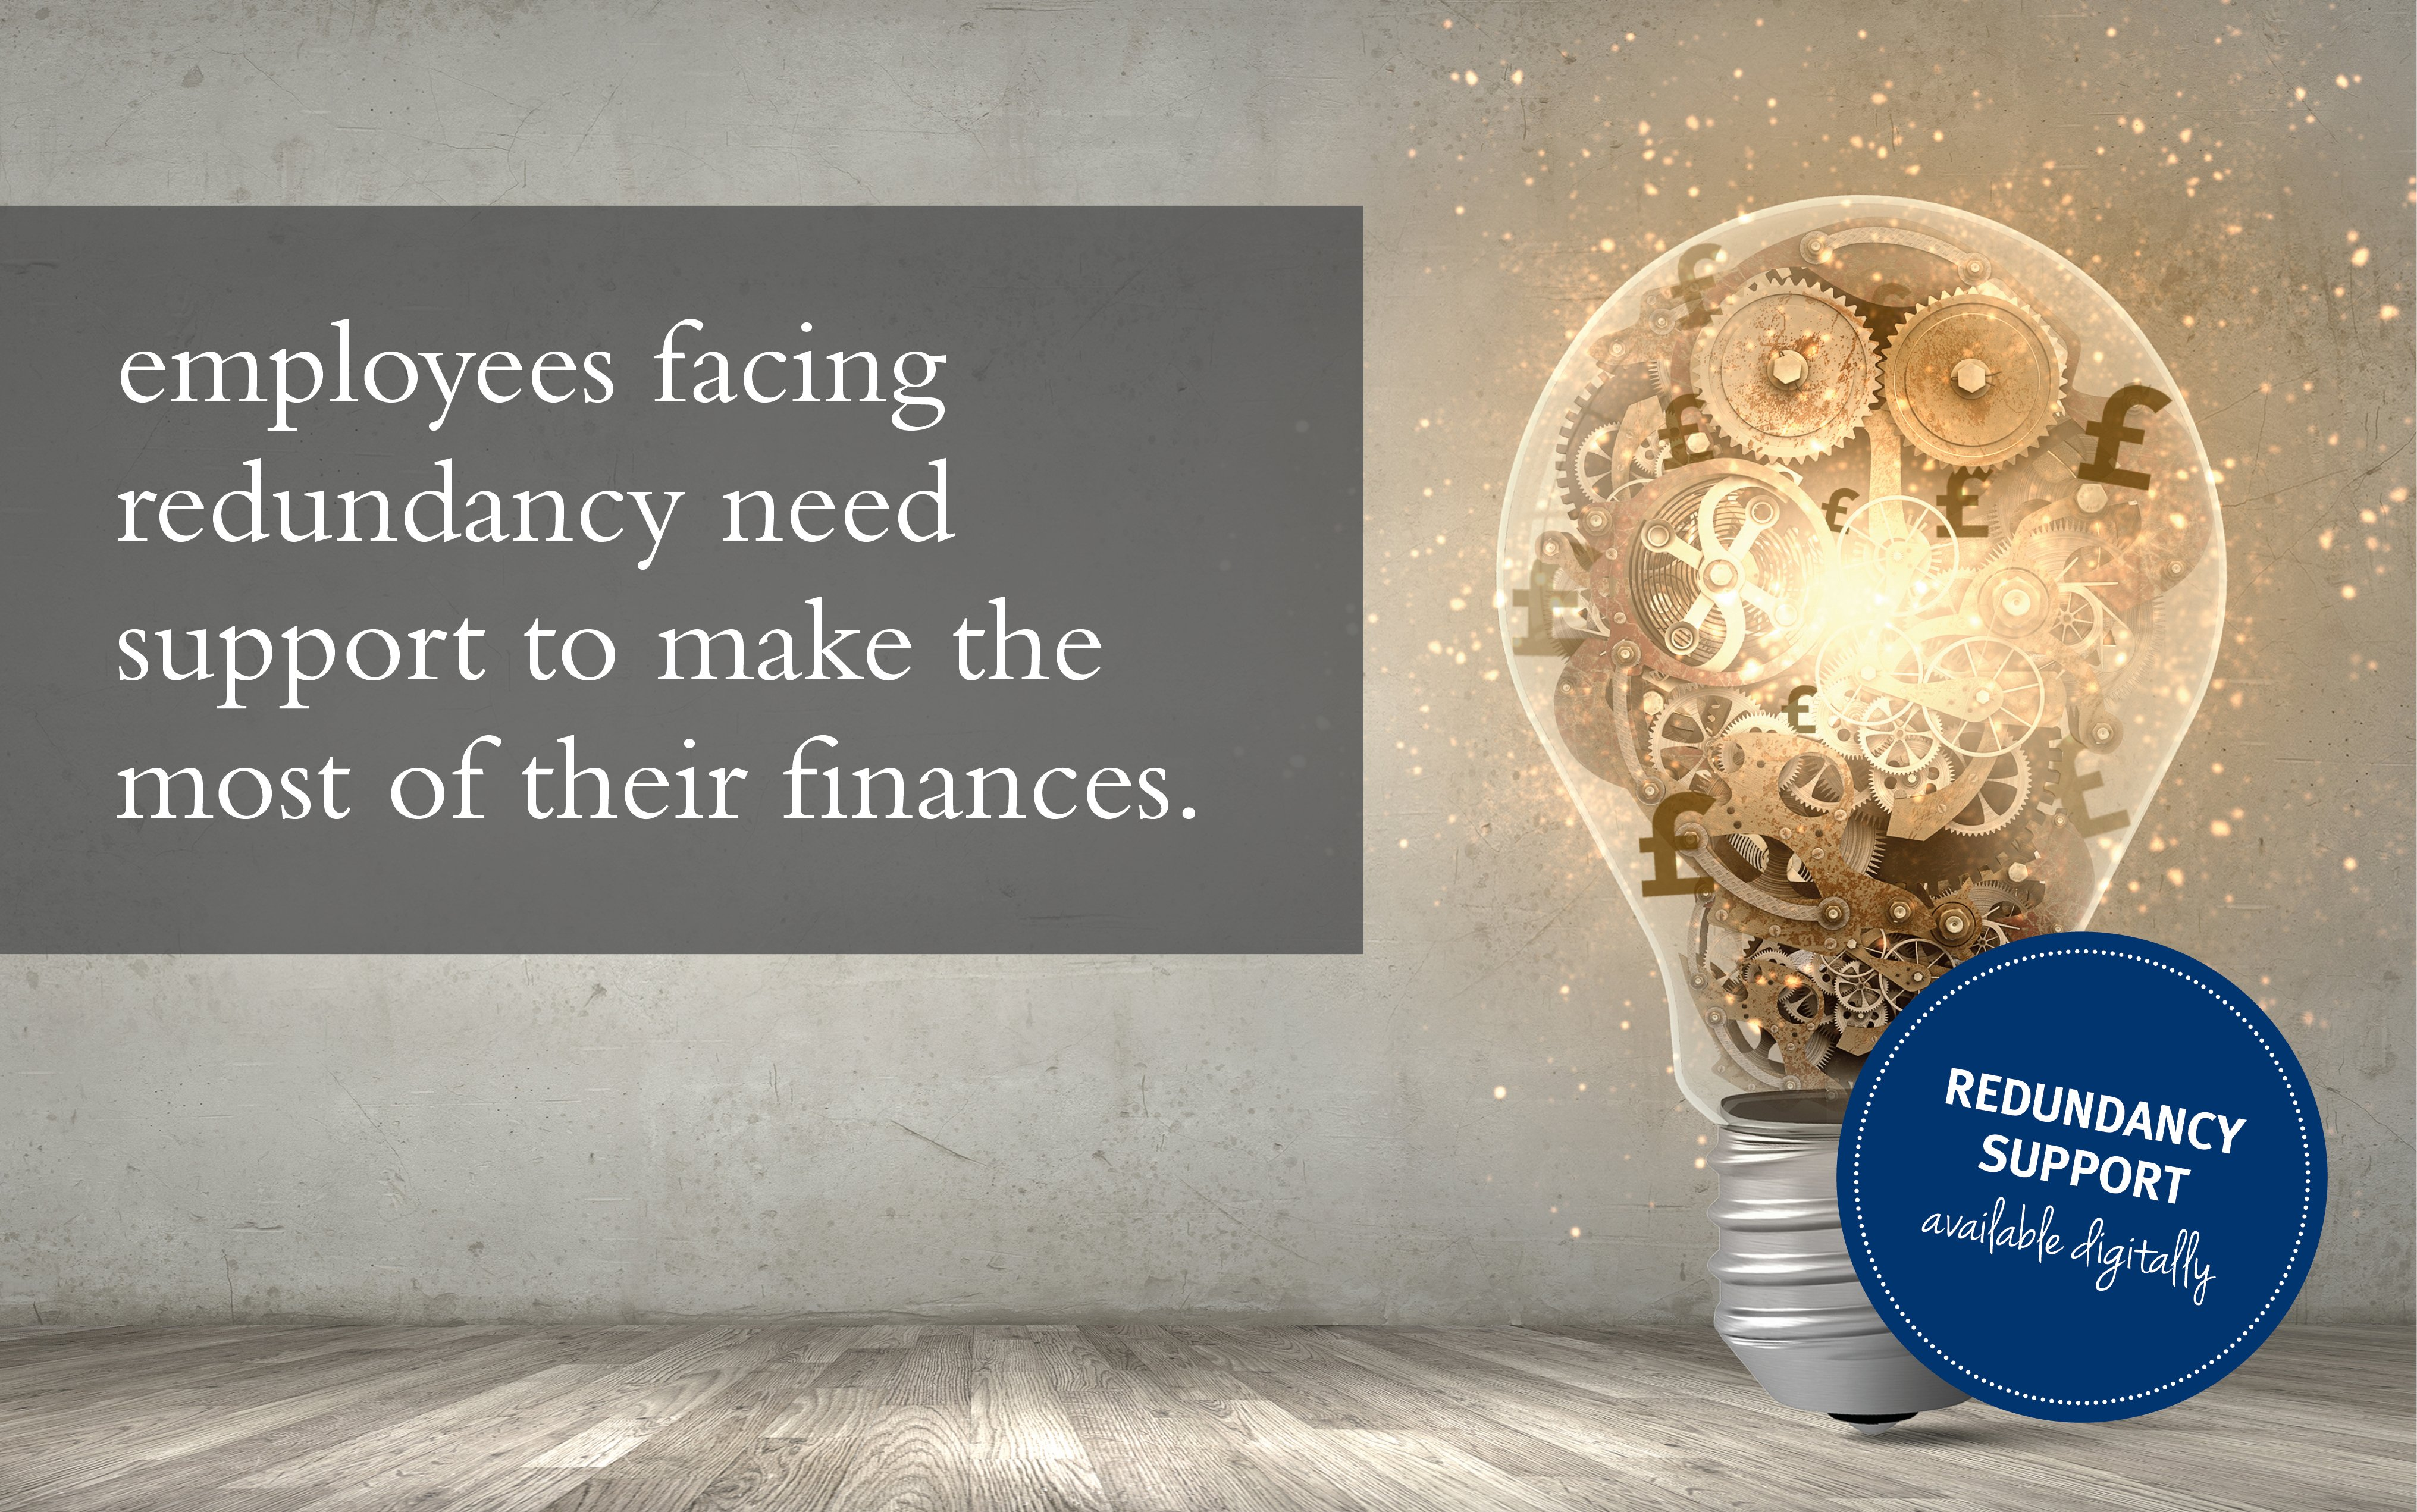 Employees facing redundancy need support to make the most of their finances.